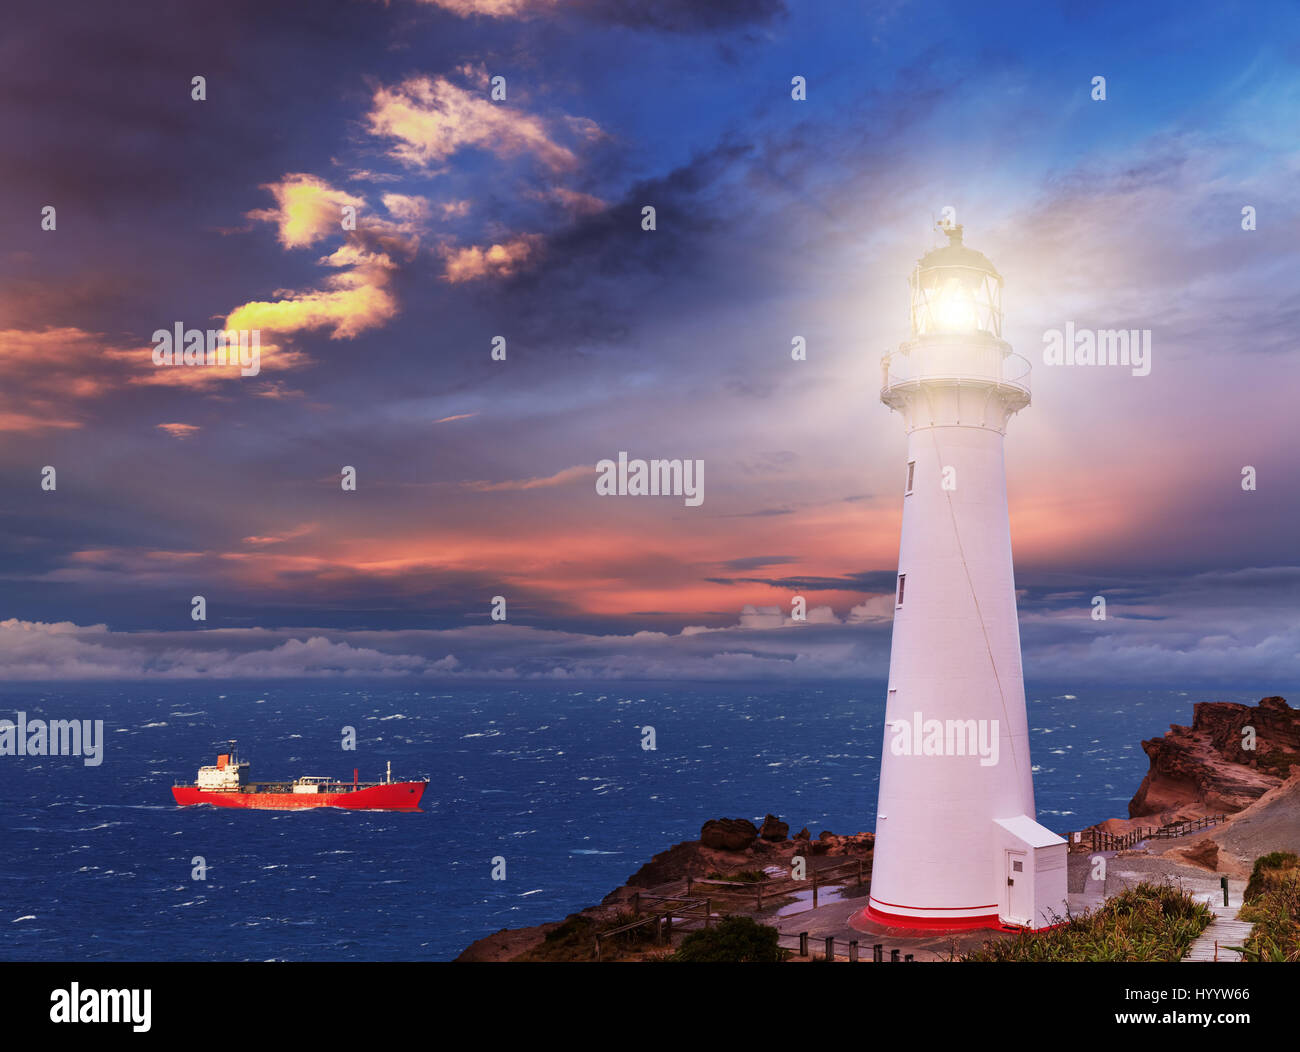 Sunset seascape, lighthouse on the bluff - Stock Image